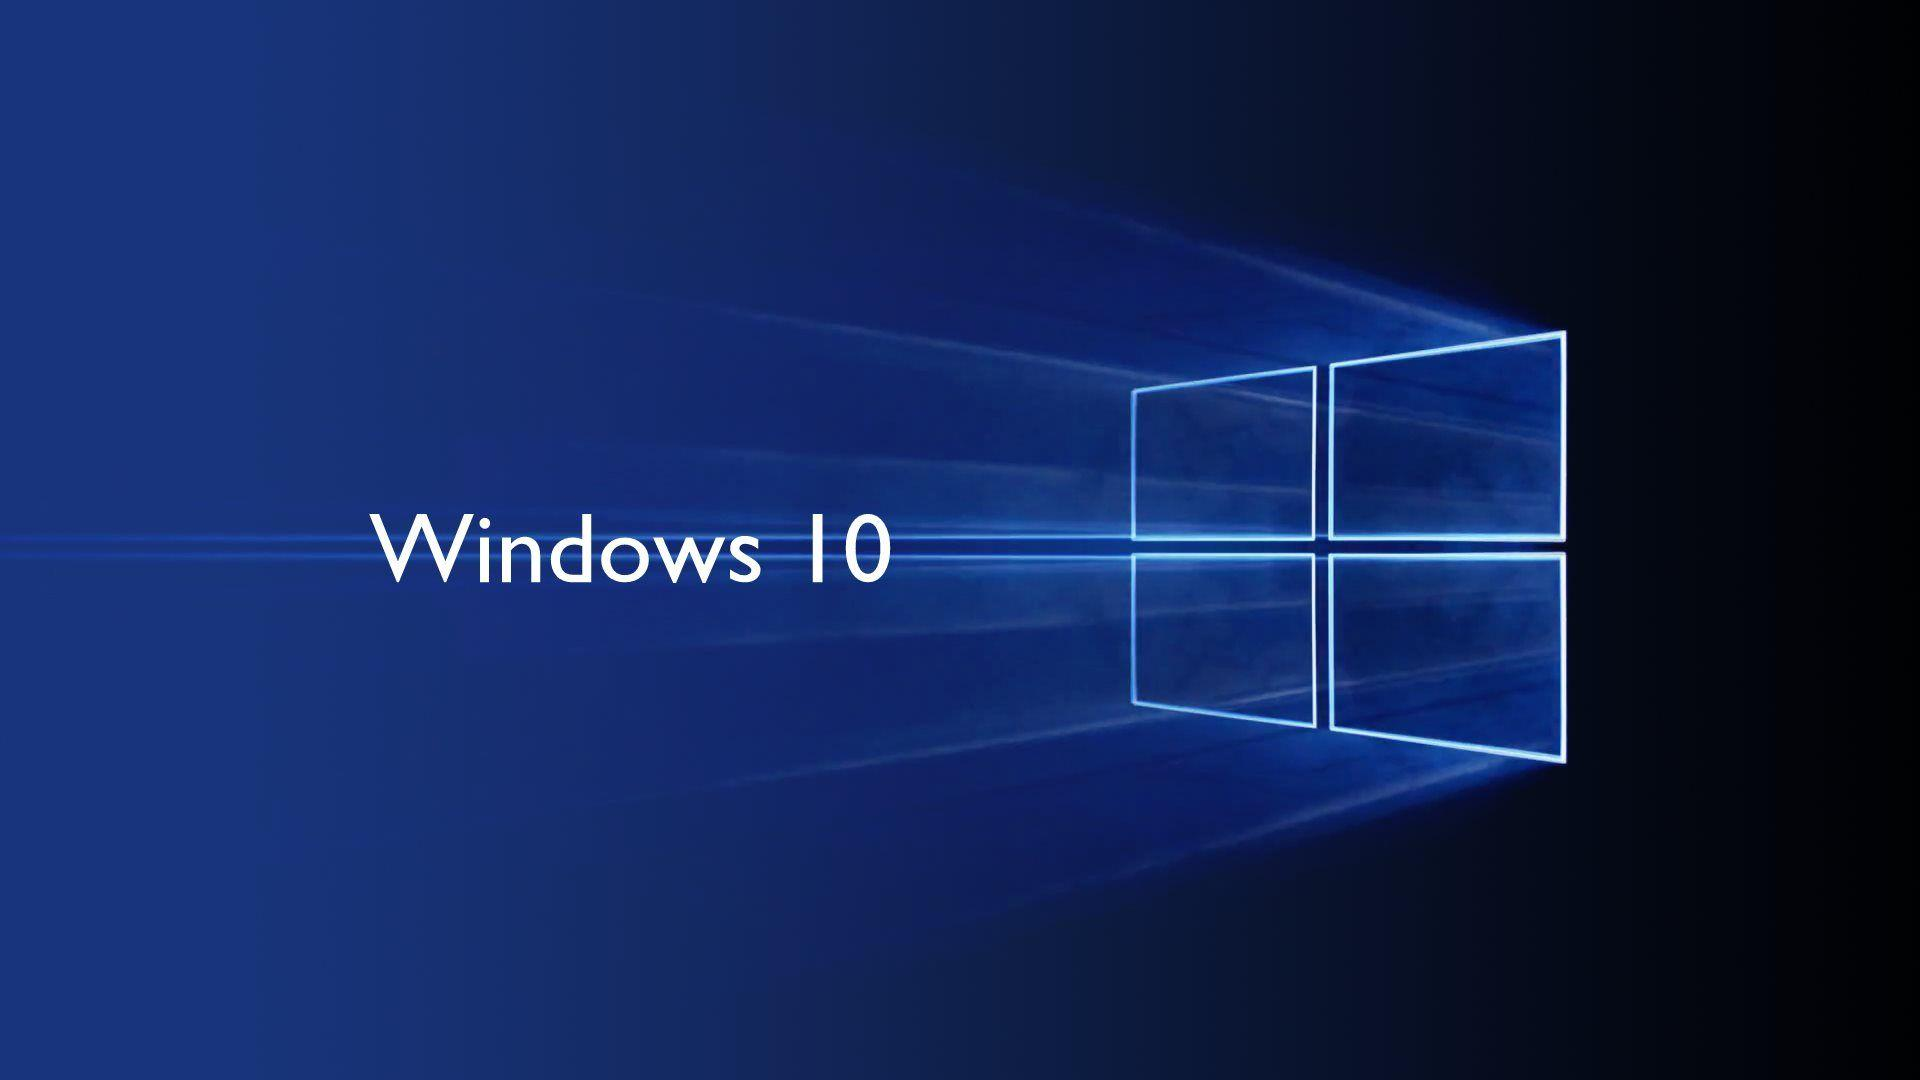 Come risolvere i problemi audio di Windows 10: la nostra guida